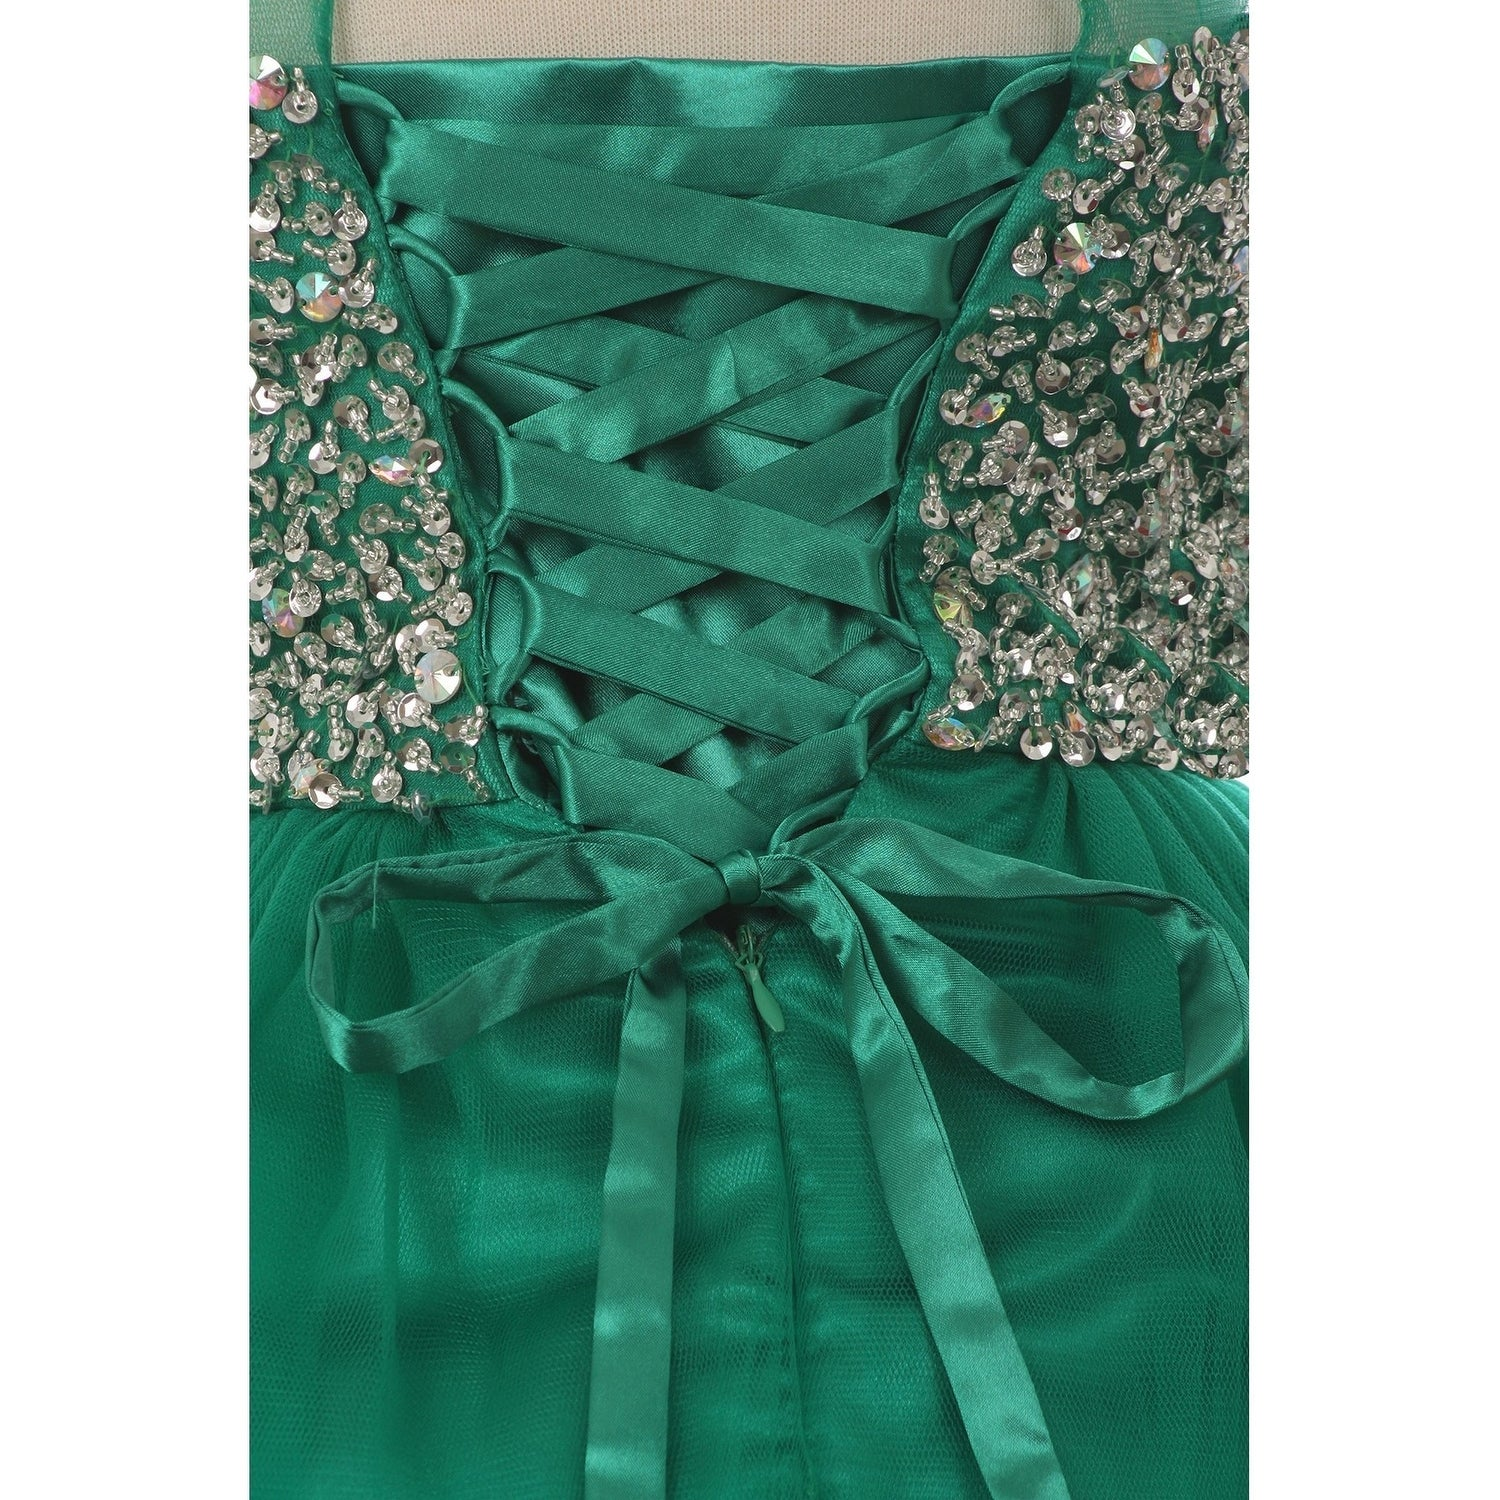 5c83e71c97 Shop Big Girls Emerald Green Glitter Bead Wired Hem Tulle Christmas Dress -  Free Shipping Today - Overstock - 24122574